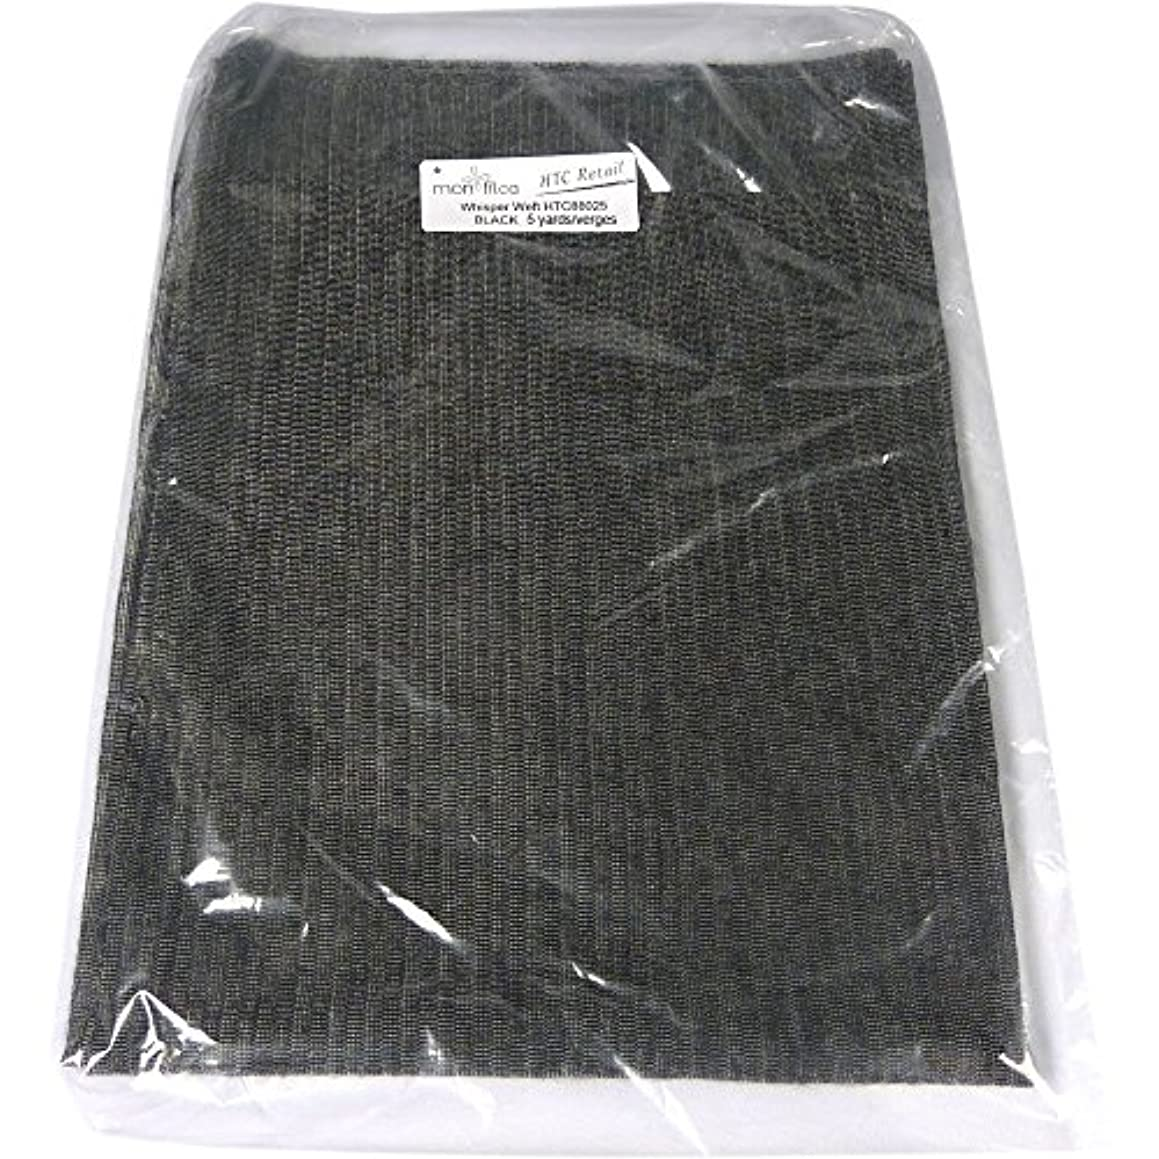 Superpunch Whisper Weft Black HTC88025-20 inches Wide, Fuusible Lightweight Weft Insertion for Soft Tailoring Sold in 5 Yard Package